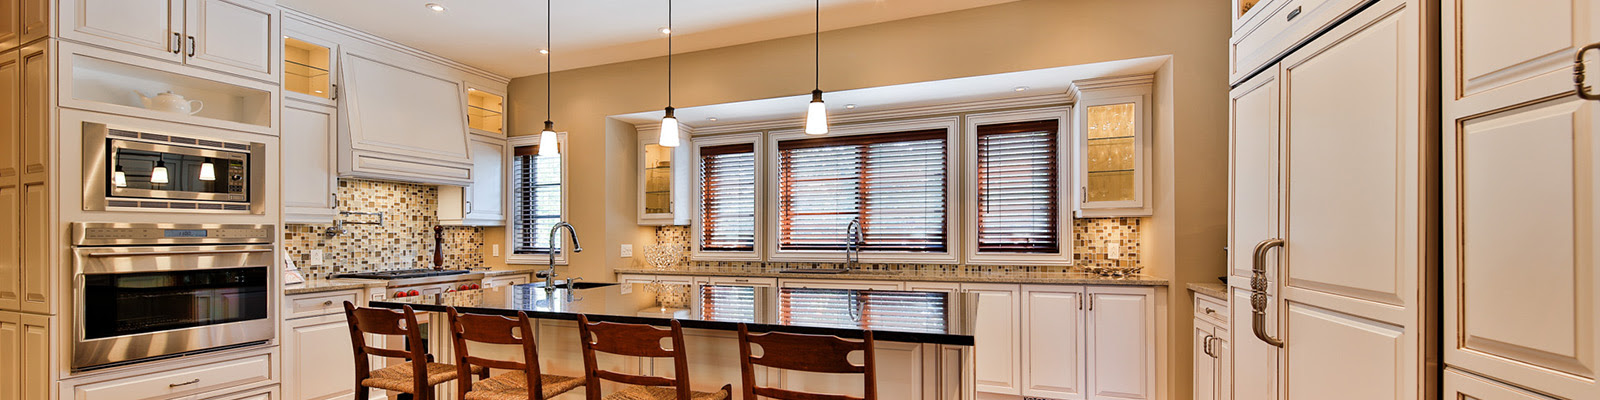 Crotone Kitchens - Fine Cabinetry since 1969!